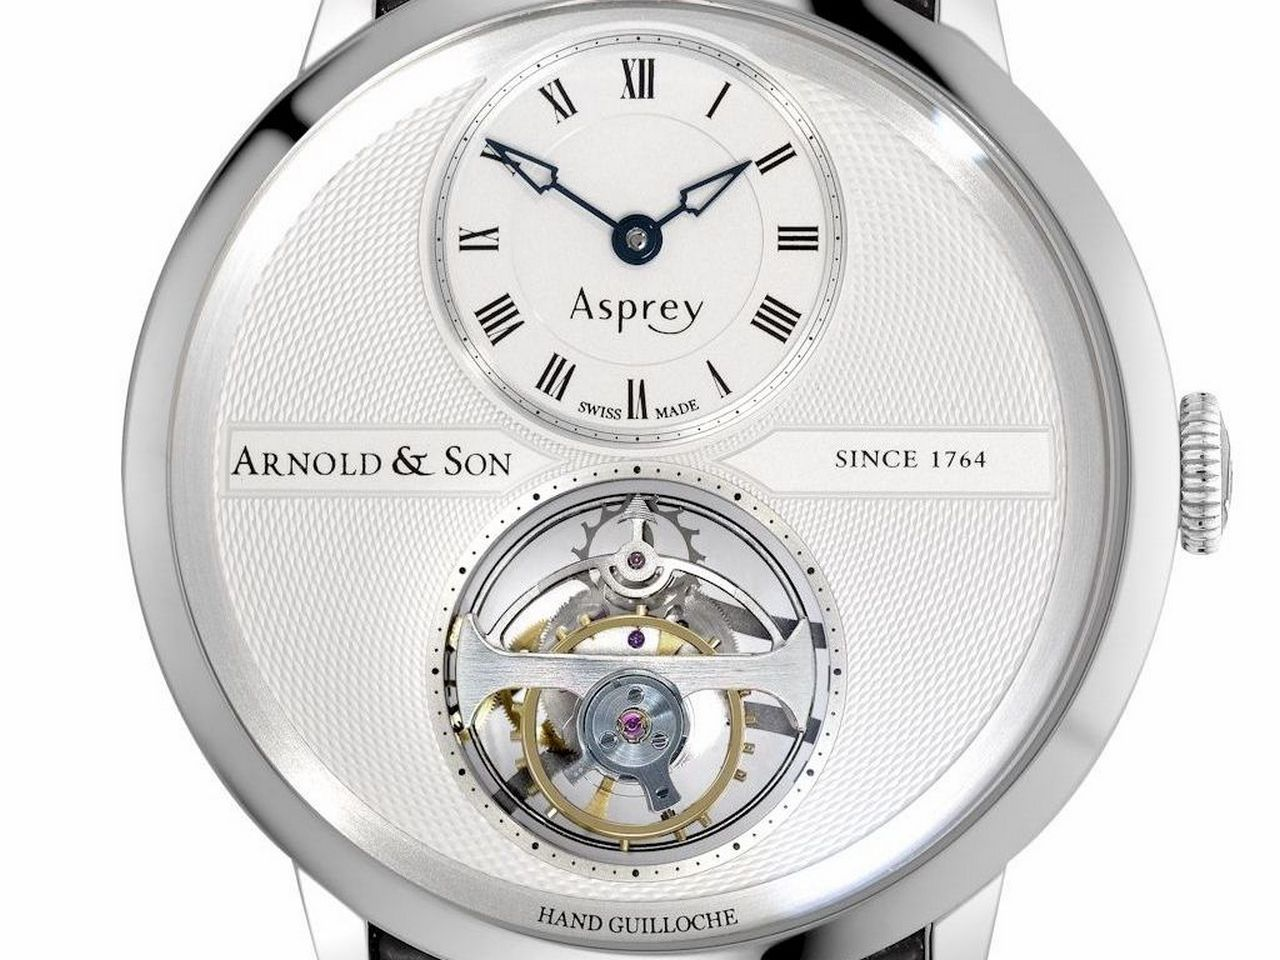 the-ultra-thin-tourbillon-watch-from-asprey-with-arnold-son_0-100_6